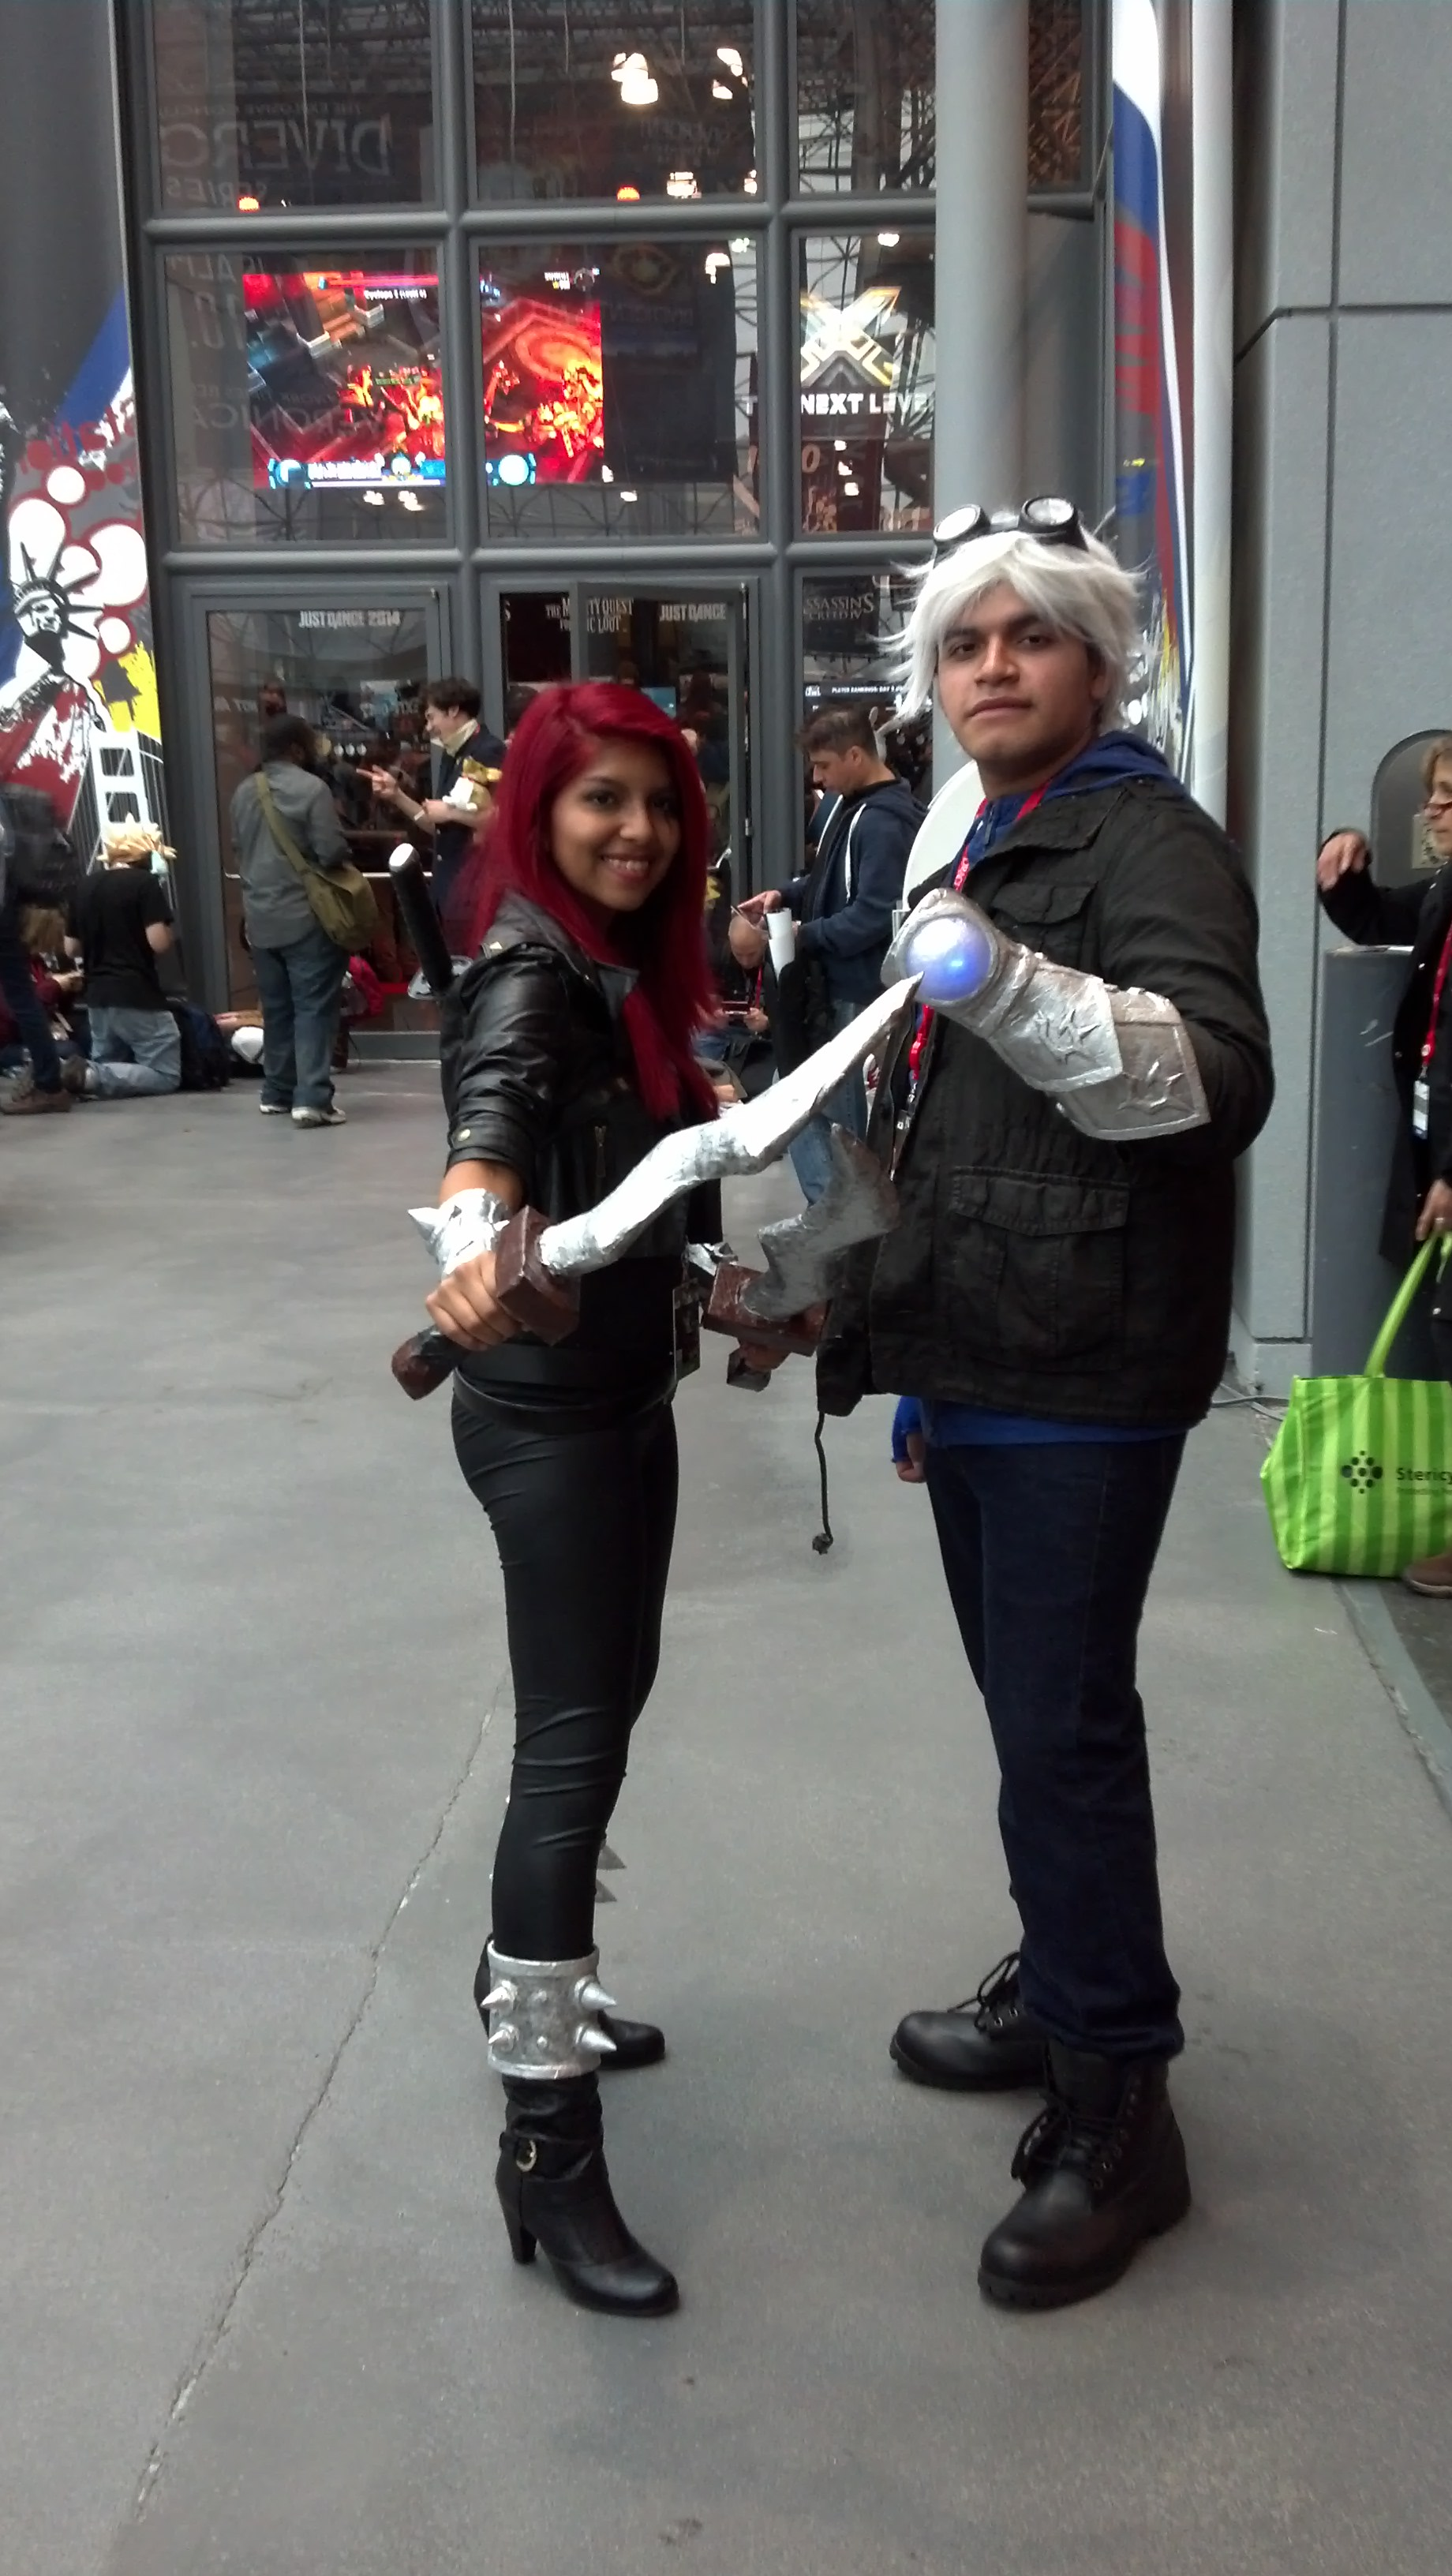 Katarina and Ezreal who I found checking their con map.